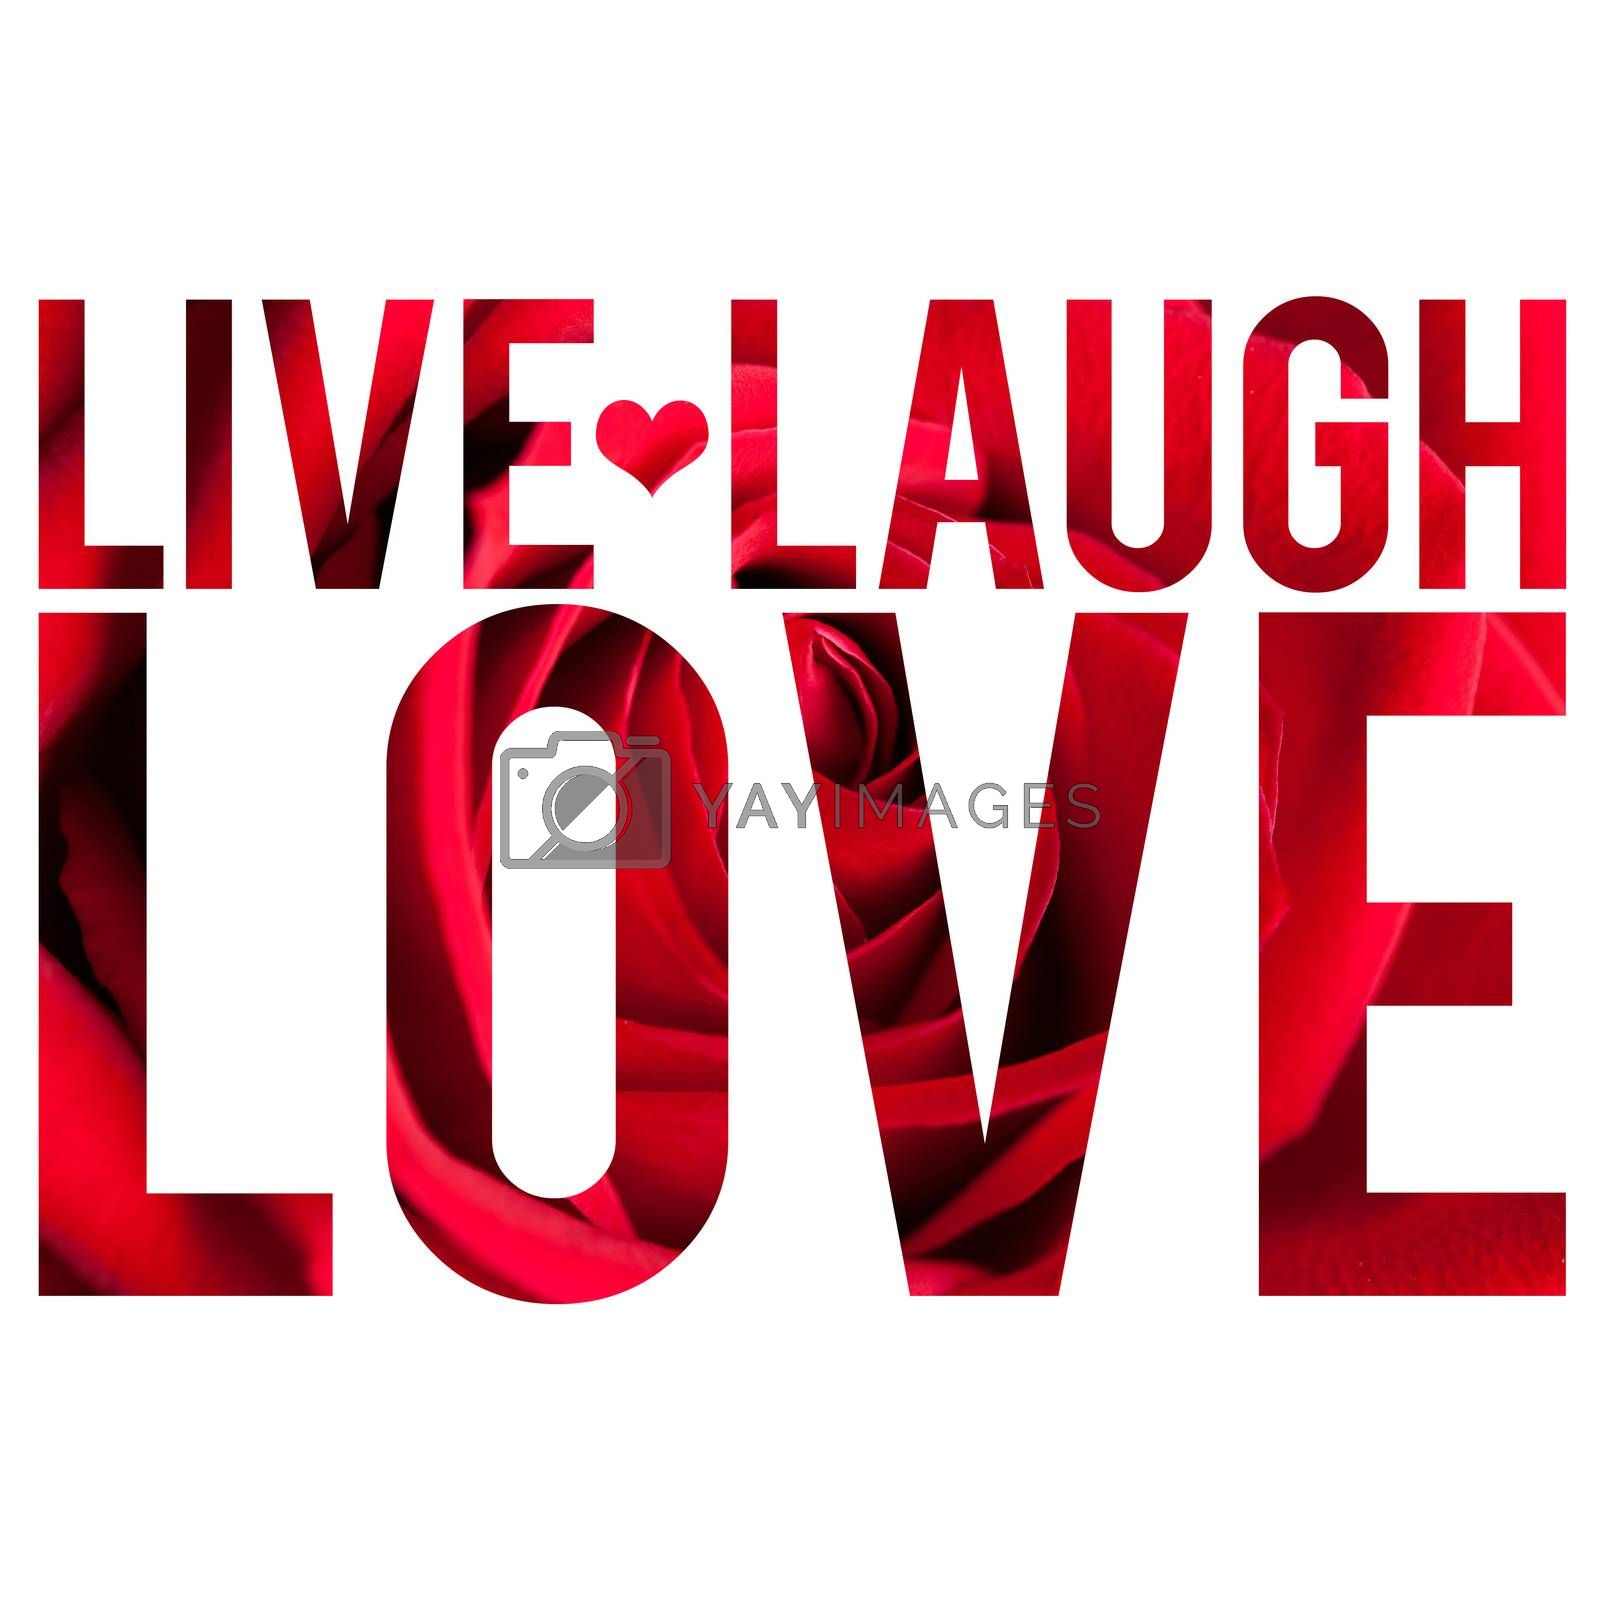 Live Laugh Love by graficallyminded